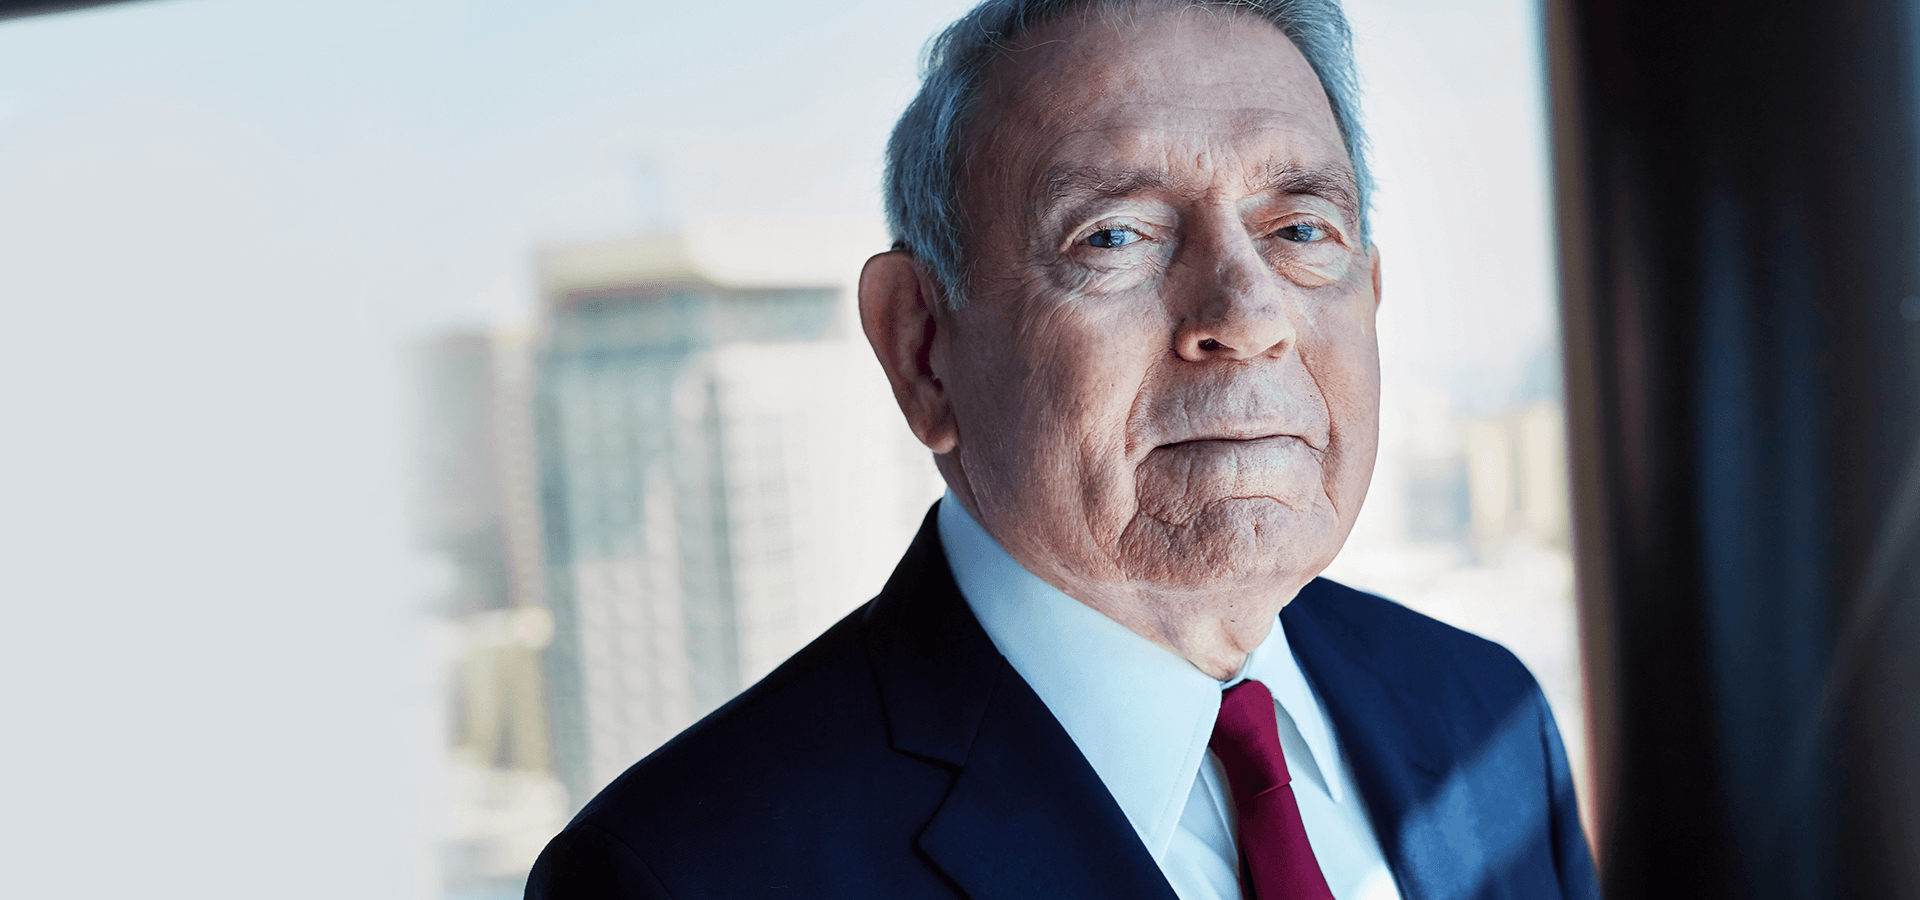 The Big Interview with Dan Rather – Season 7